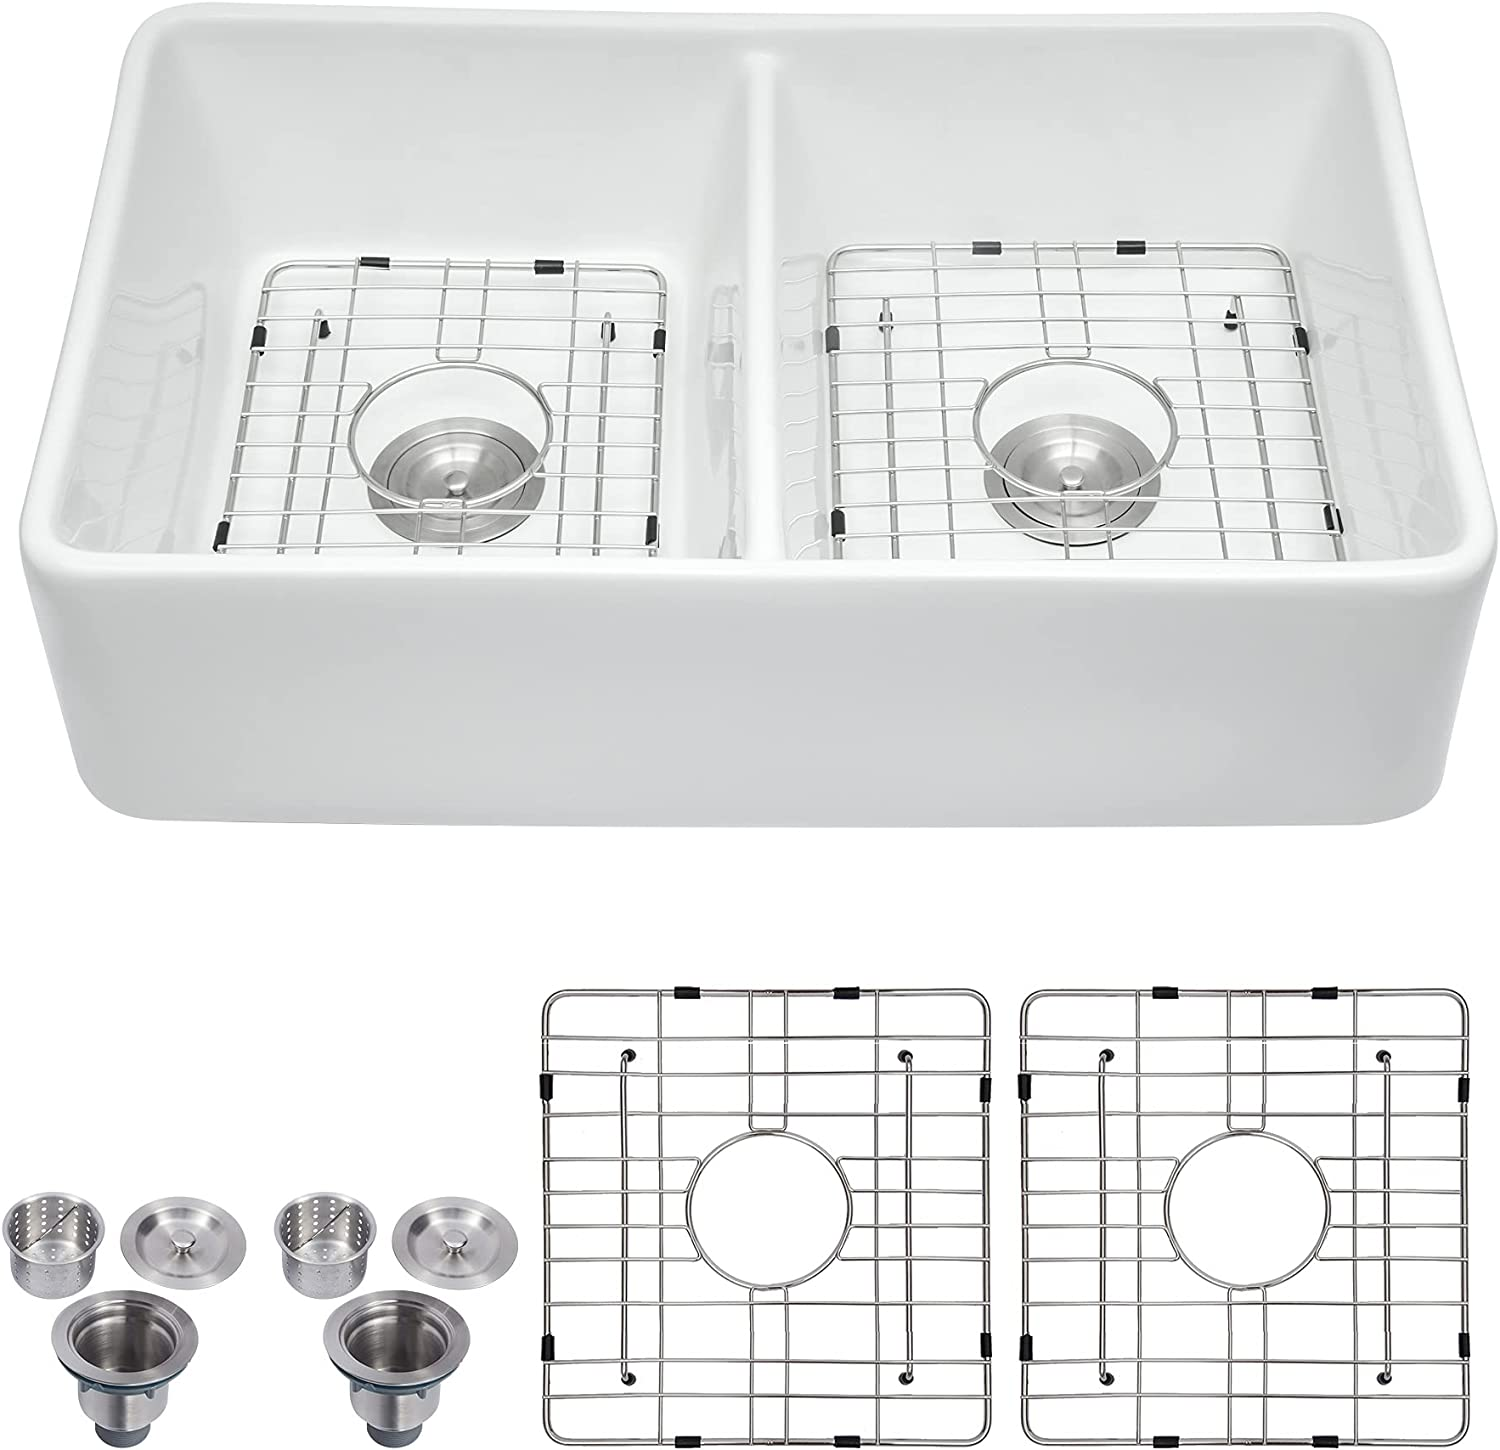 White Farmhouse specialty shop Sink - Logmey 32 Attention brand Farm Bowl Apro Double Inch